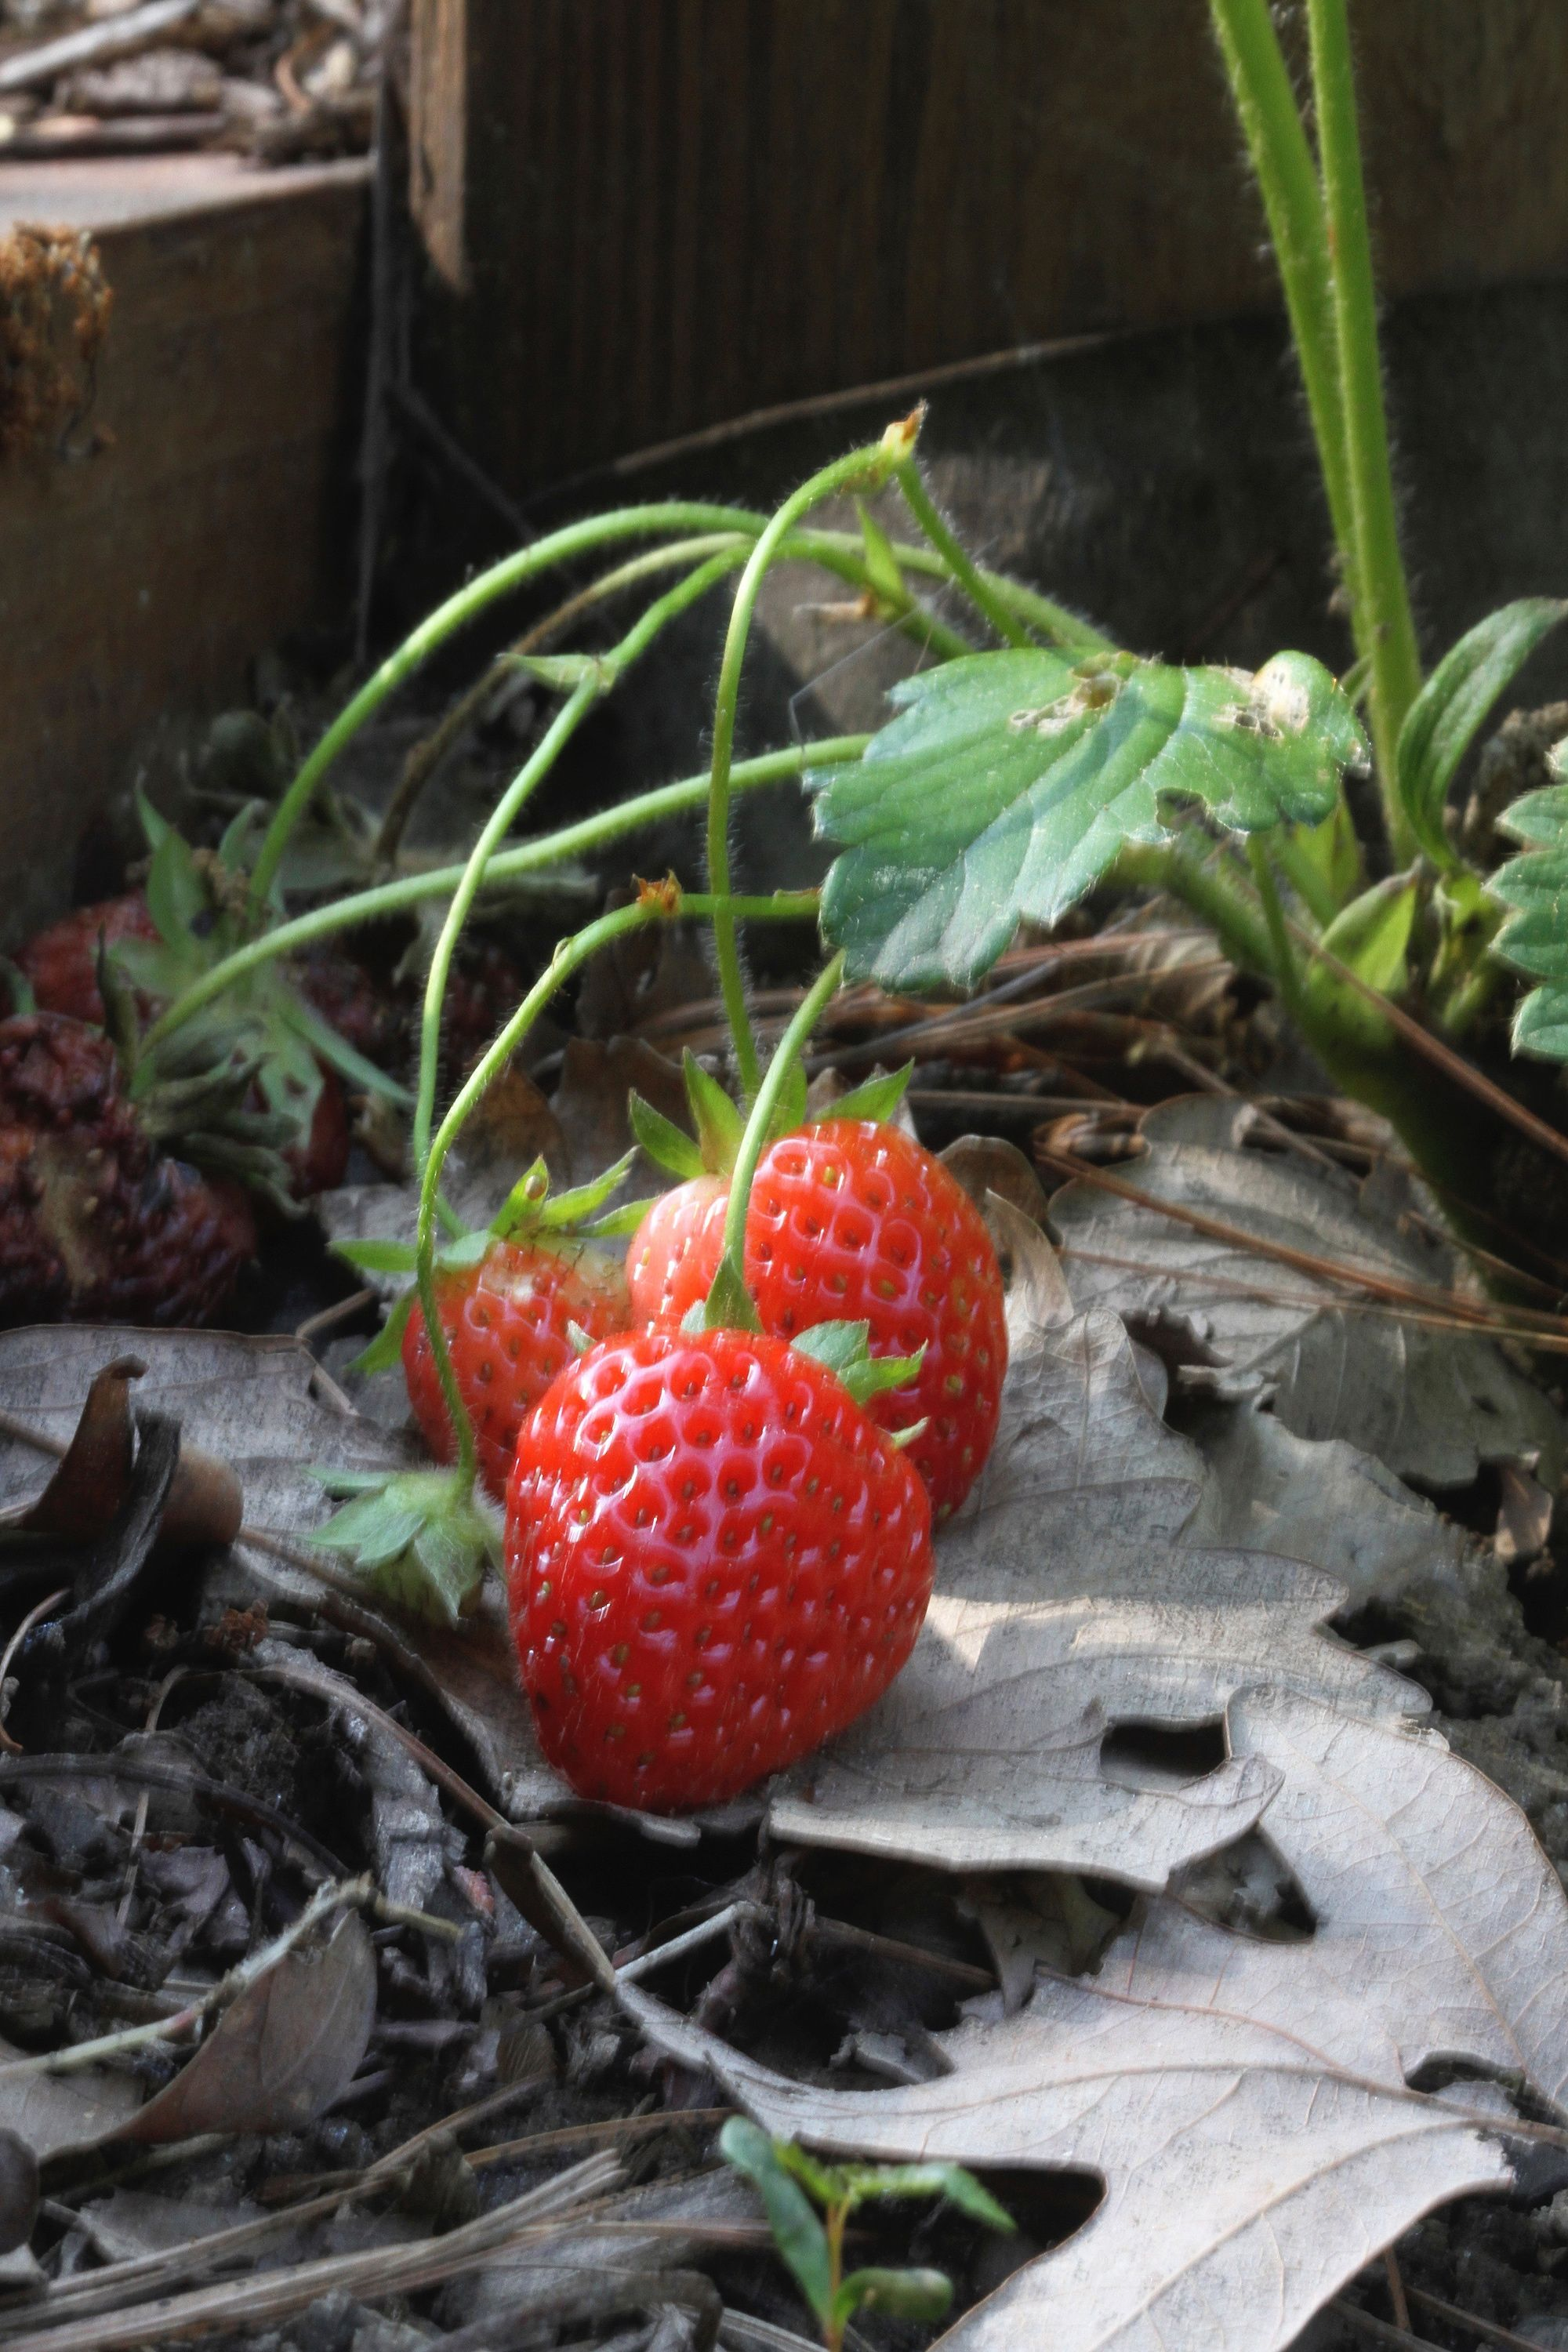 Why bother mowing thirsty lawns when you can grow edibles? Replace those sorry-looking patches of grass around trees, pathways and slopes with mint, thyme, strawberries, and a host of attractive and p